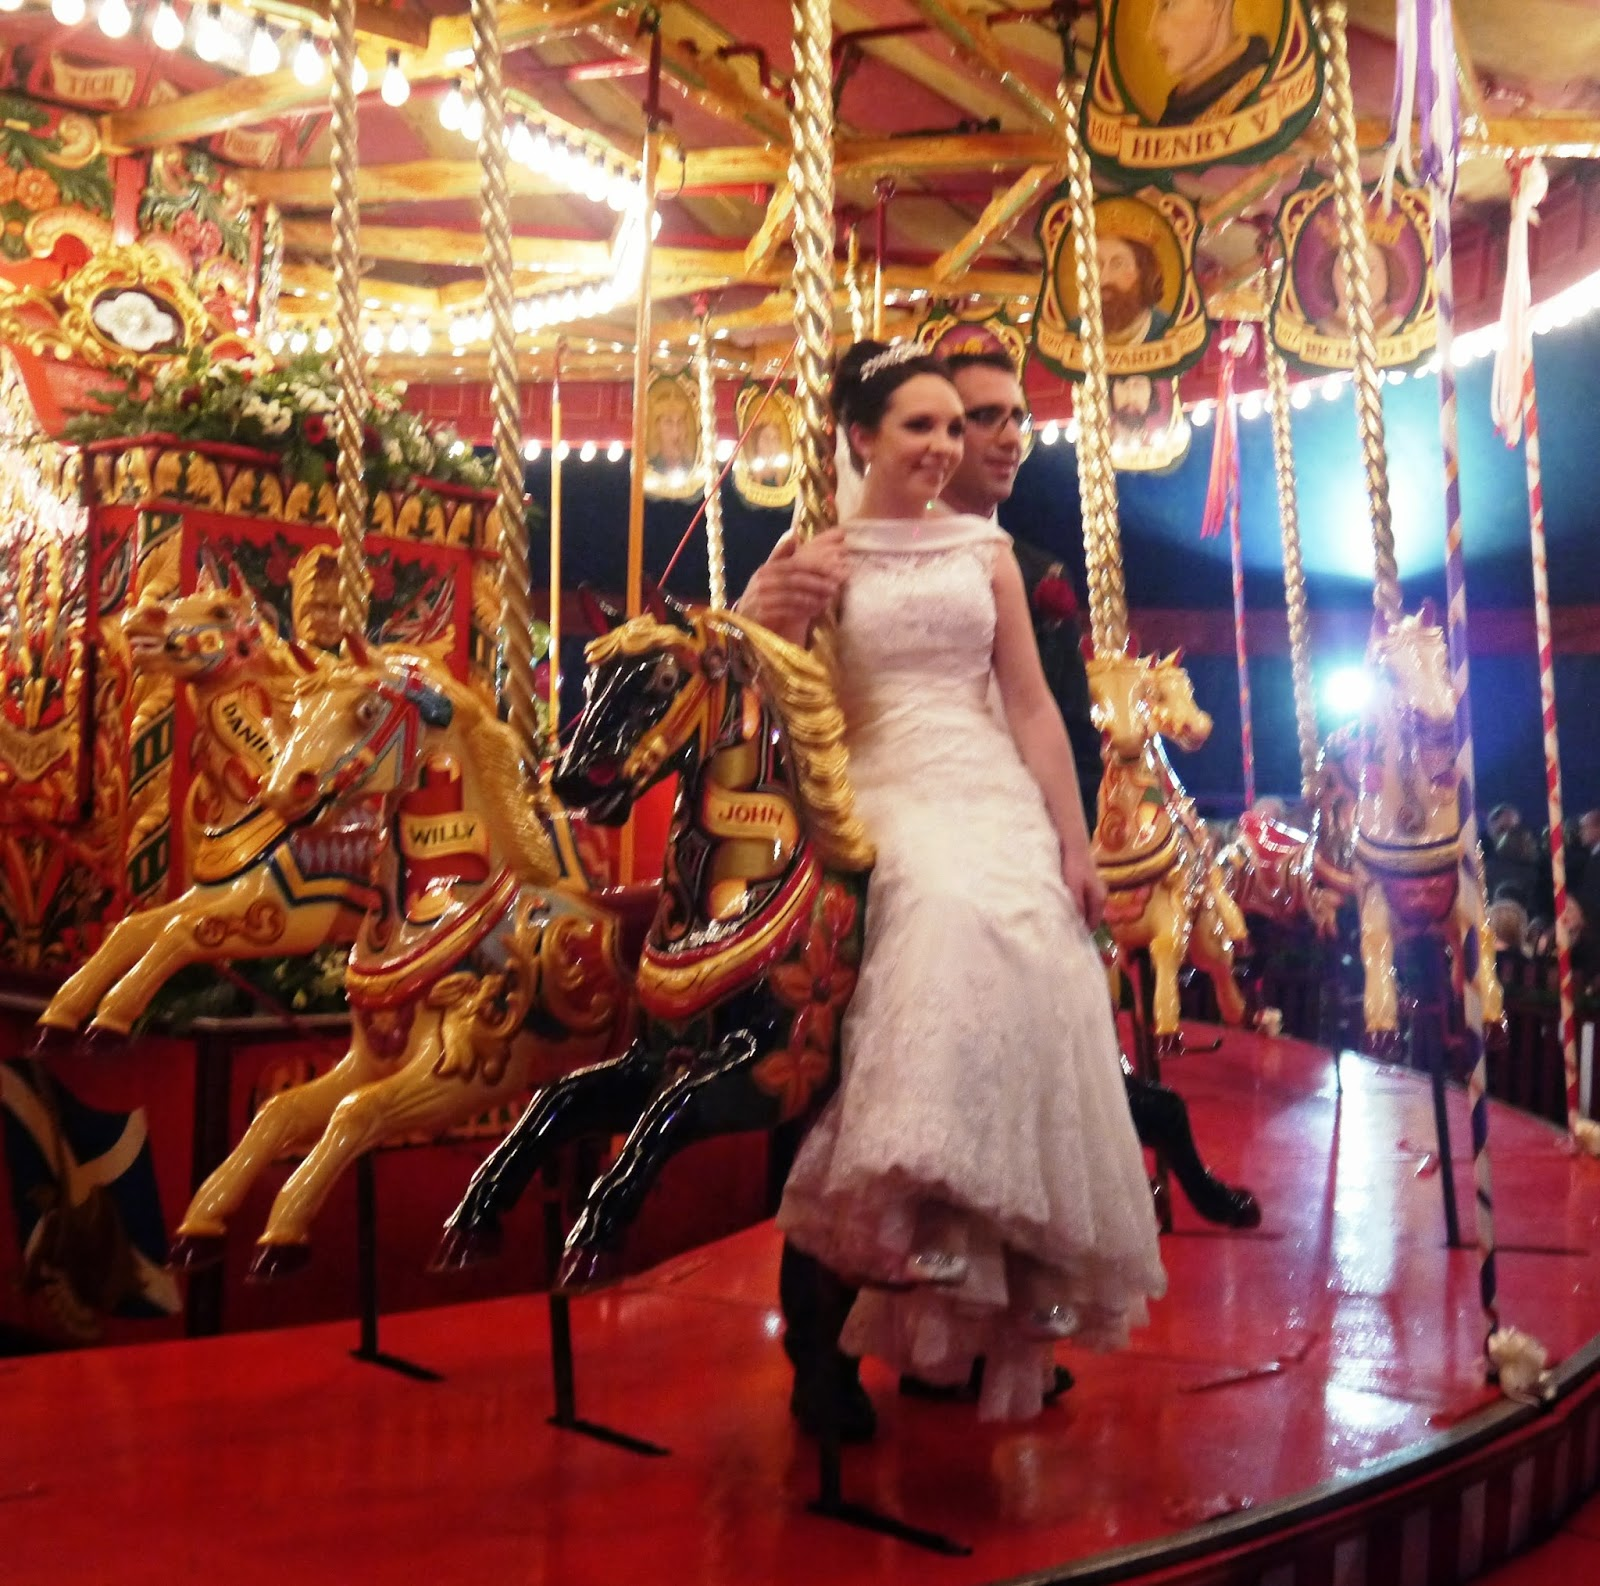 Carters Steam Fair Wedding - Bride and Groom